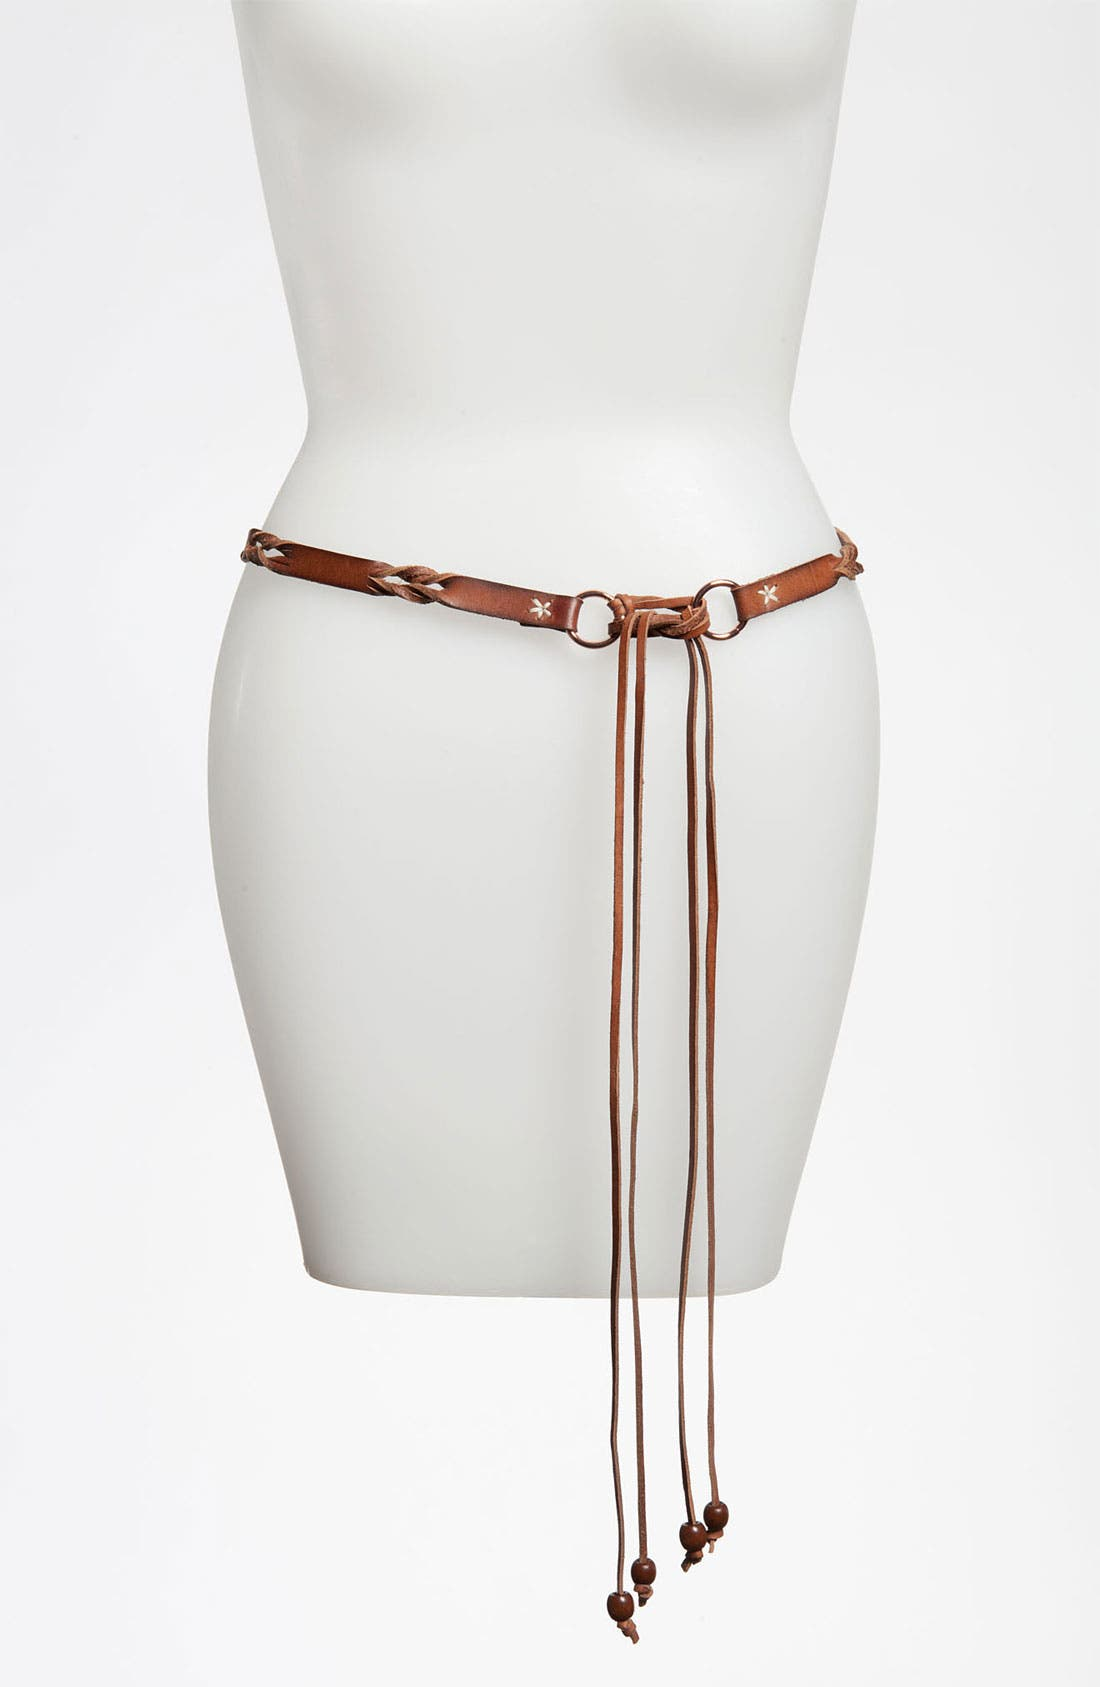 Alternate Image 1 Selected - Linea Pelle Patterned Leather Belt